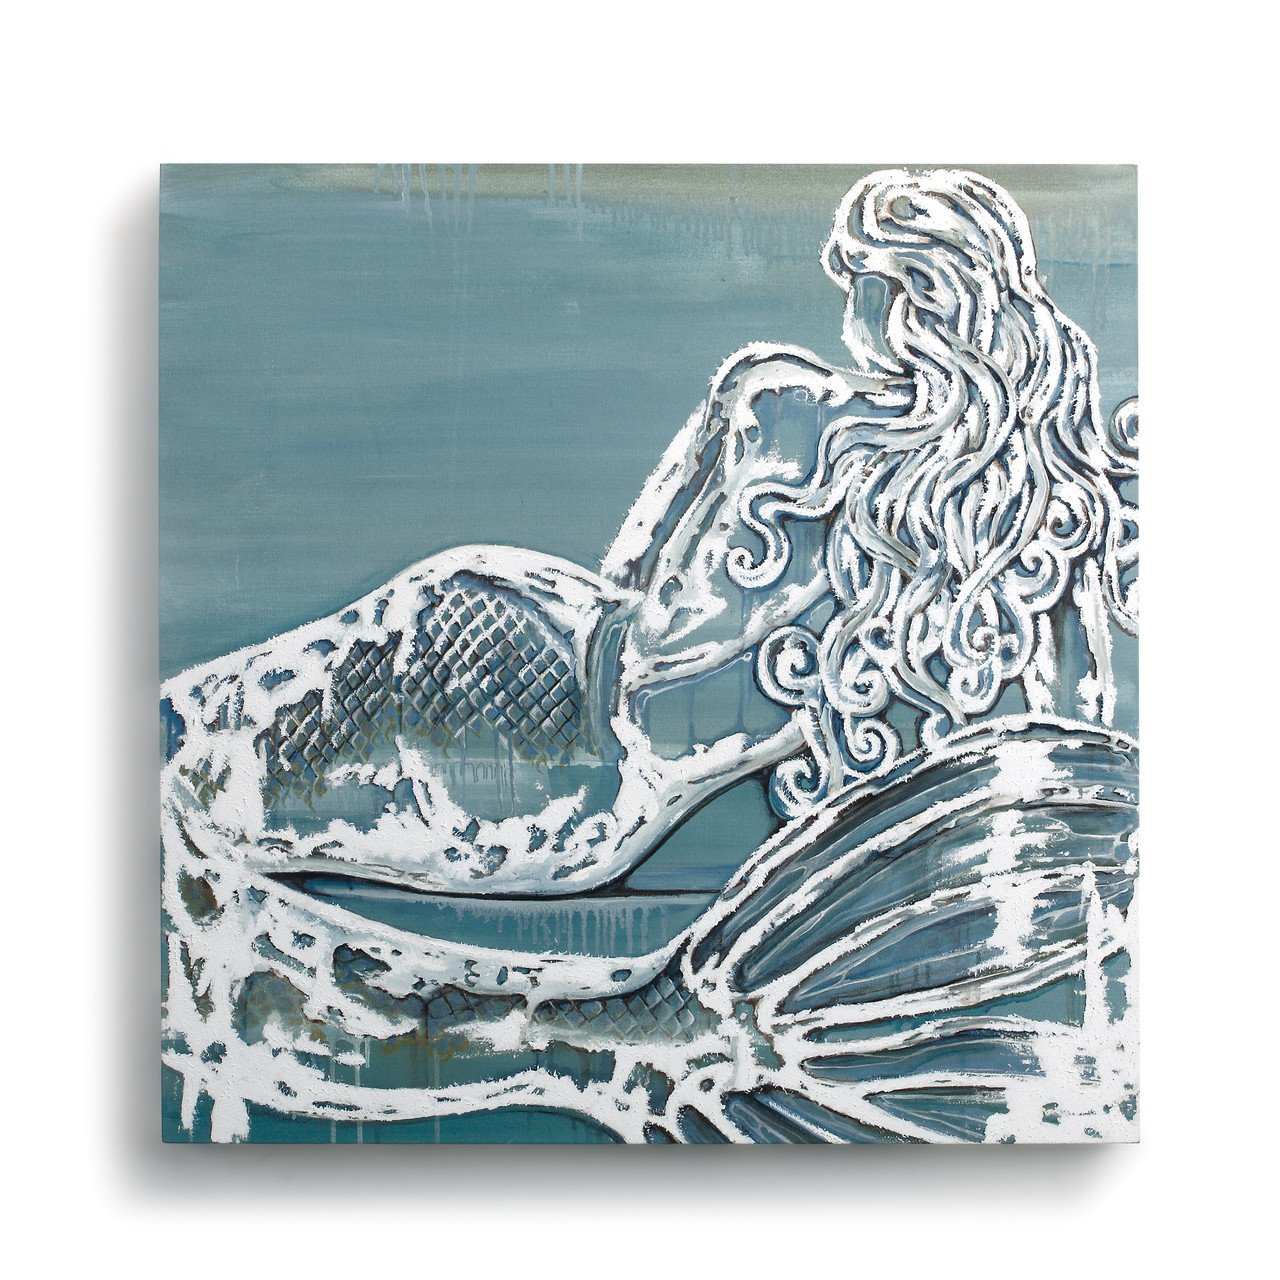 DEMDACO Mermaid Nautical Blue 24 x 24 Canvas and Wood Composite Decorative Wall Art Sign